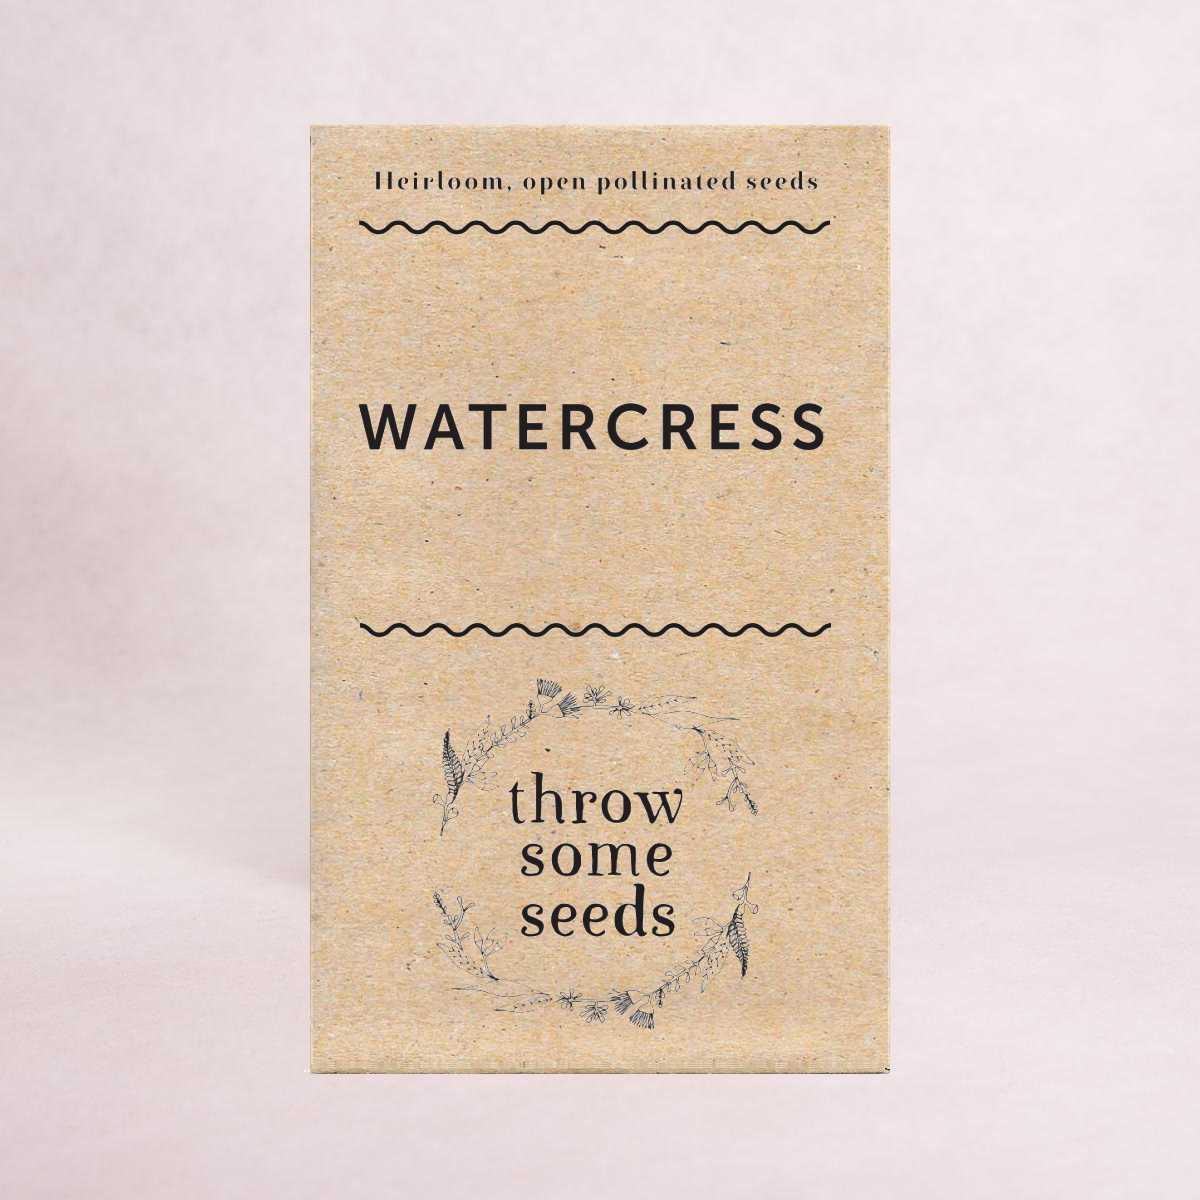 Watercress Seeds - Seeds - Throw Some Seeds - Australian gardening gifts and eco products online!